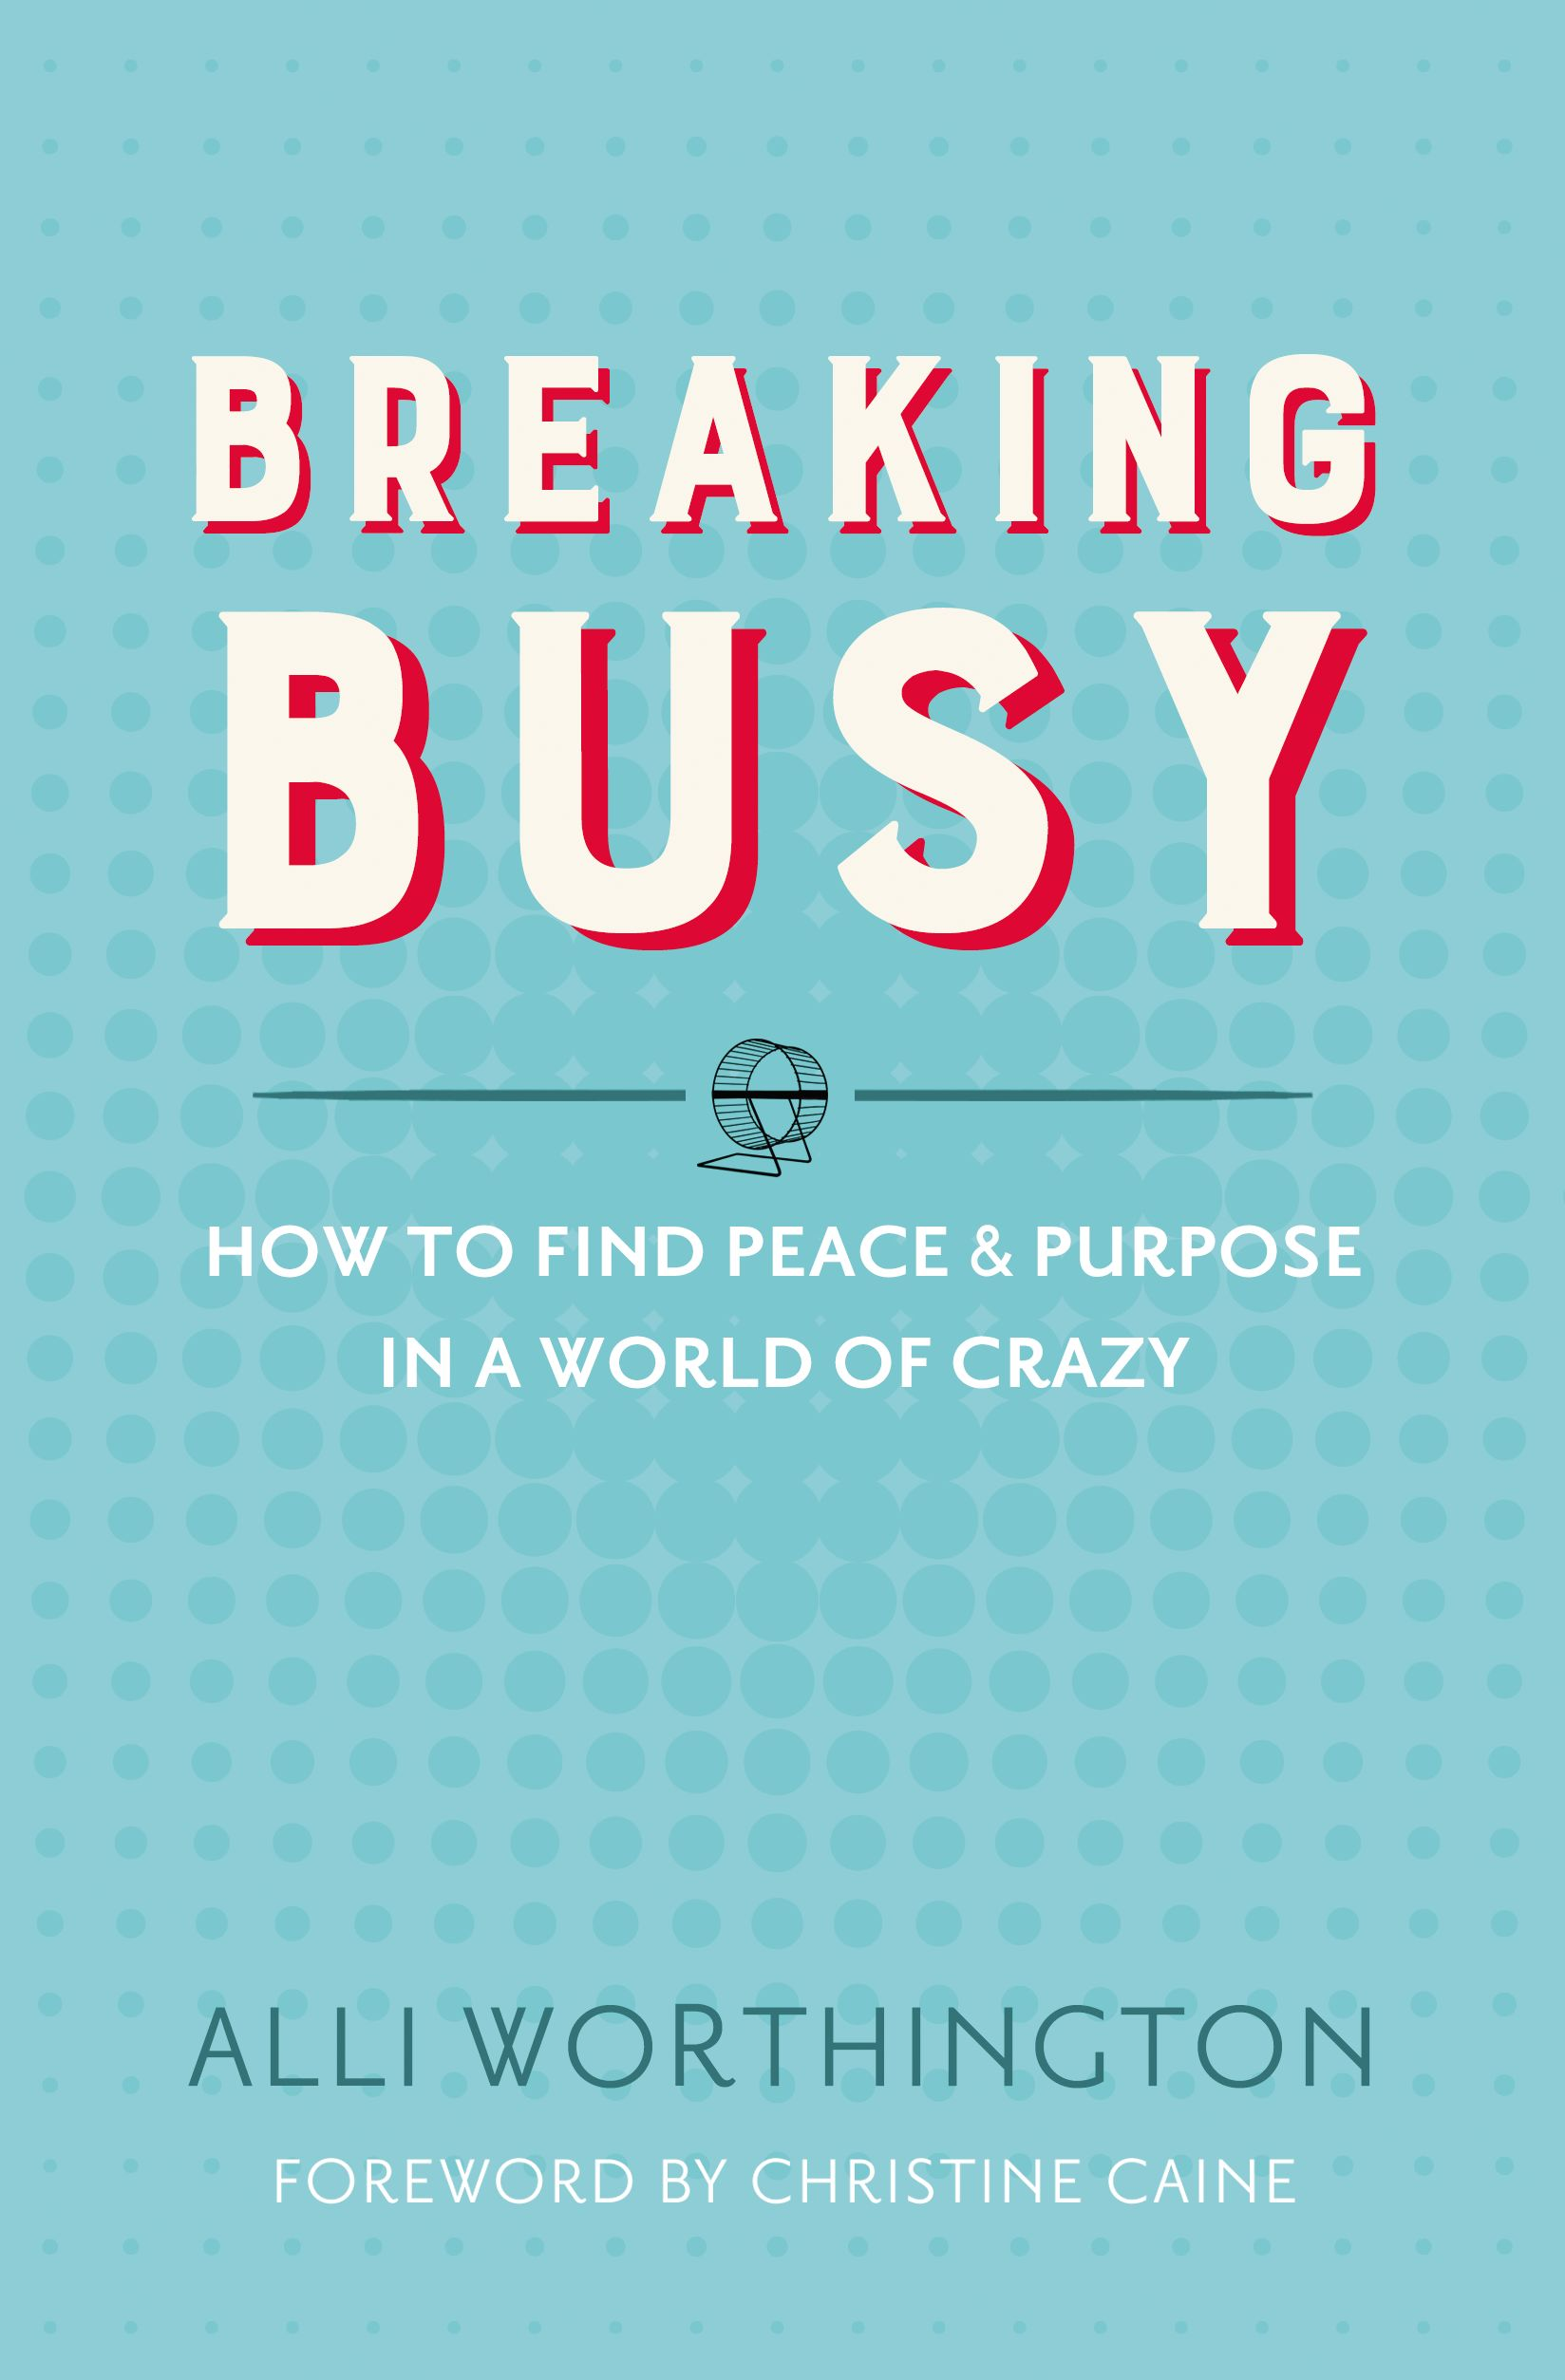 Breaking Busy: A Book Review | Making the Most Blog